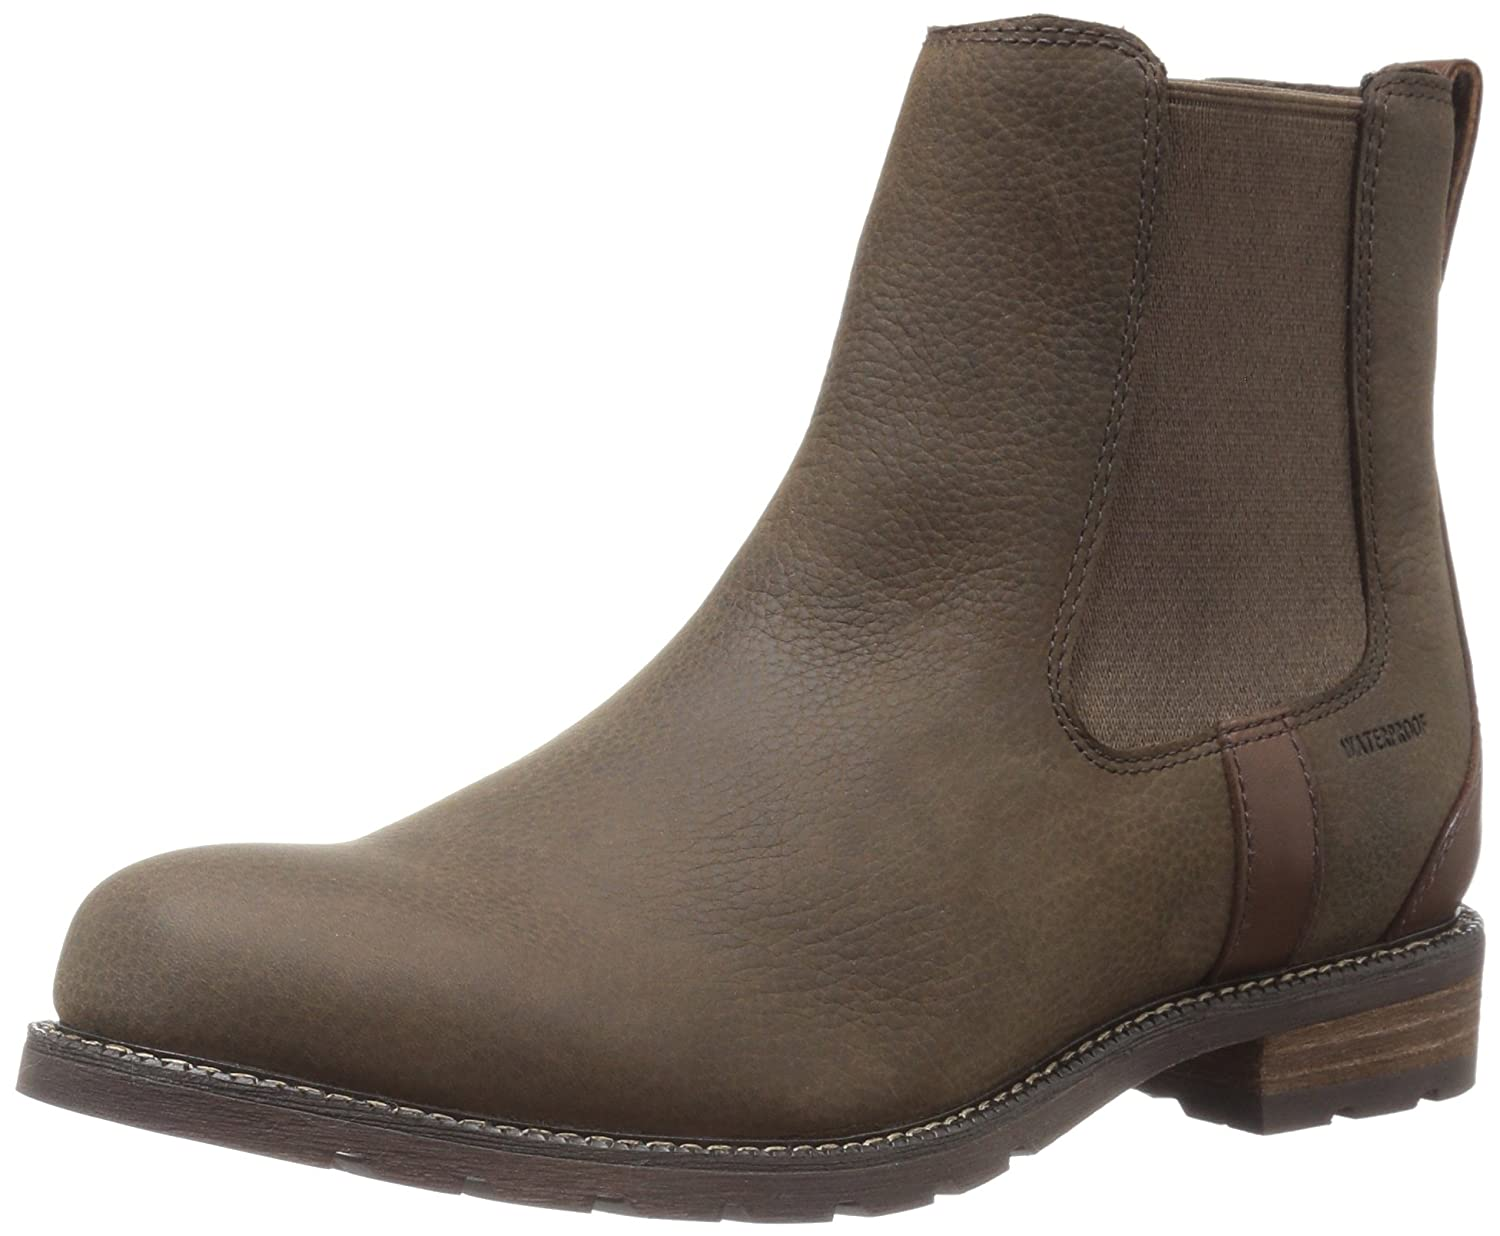 079482fc397 Ariat Women's Wexford H2O Work Boot